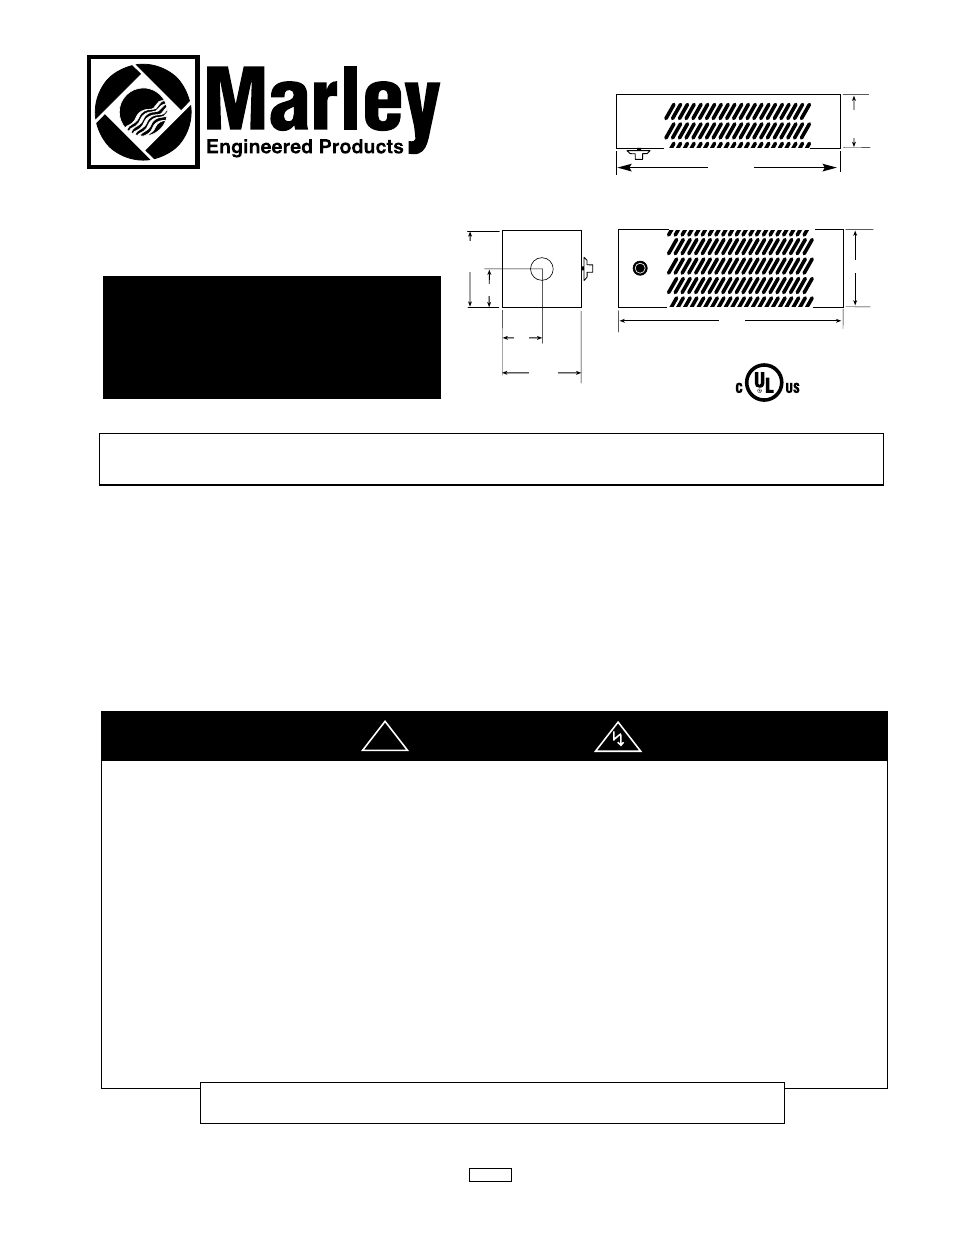 qmark heater wiring diagram qmark image wiring diagram qmark wht500 utility well house heaters user manual 2 pages on qmark heater wiring diagram